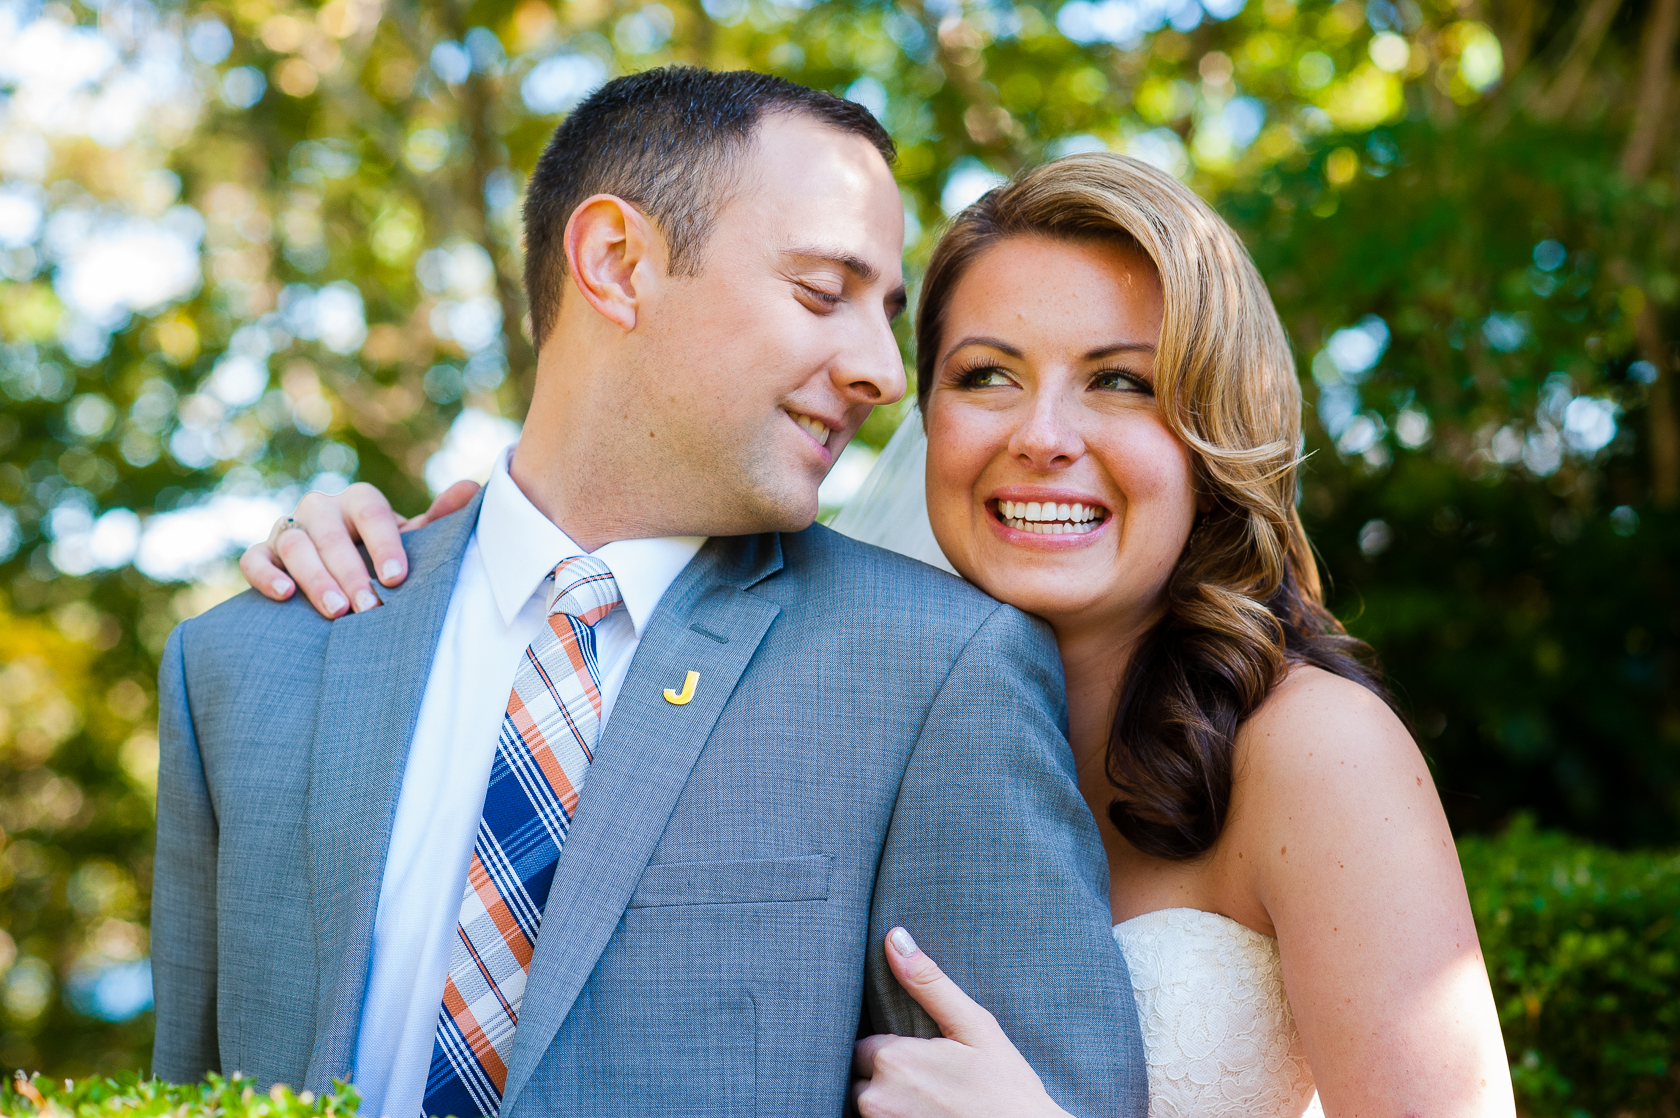 groom gives his beautiful bride kiss on cheek